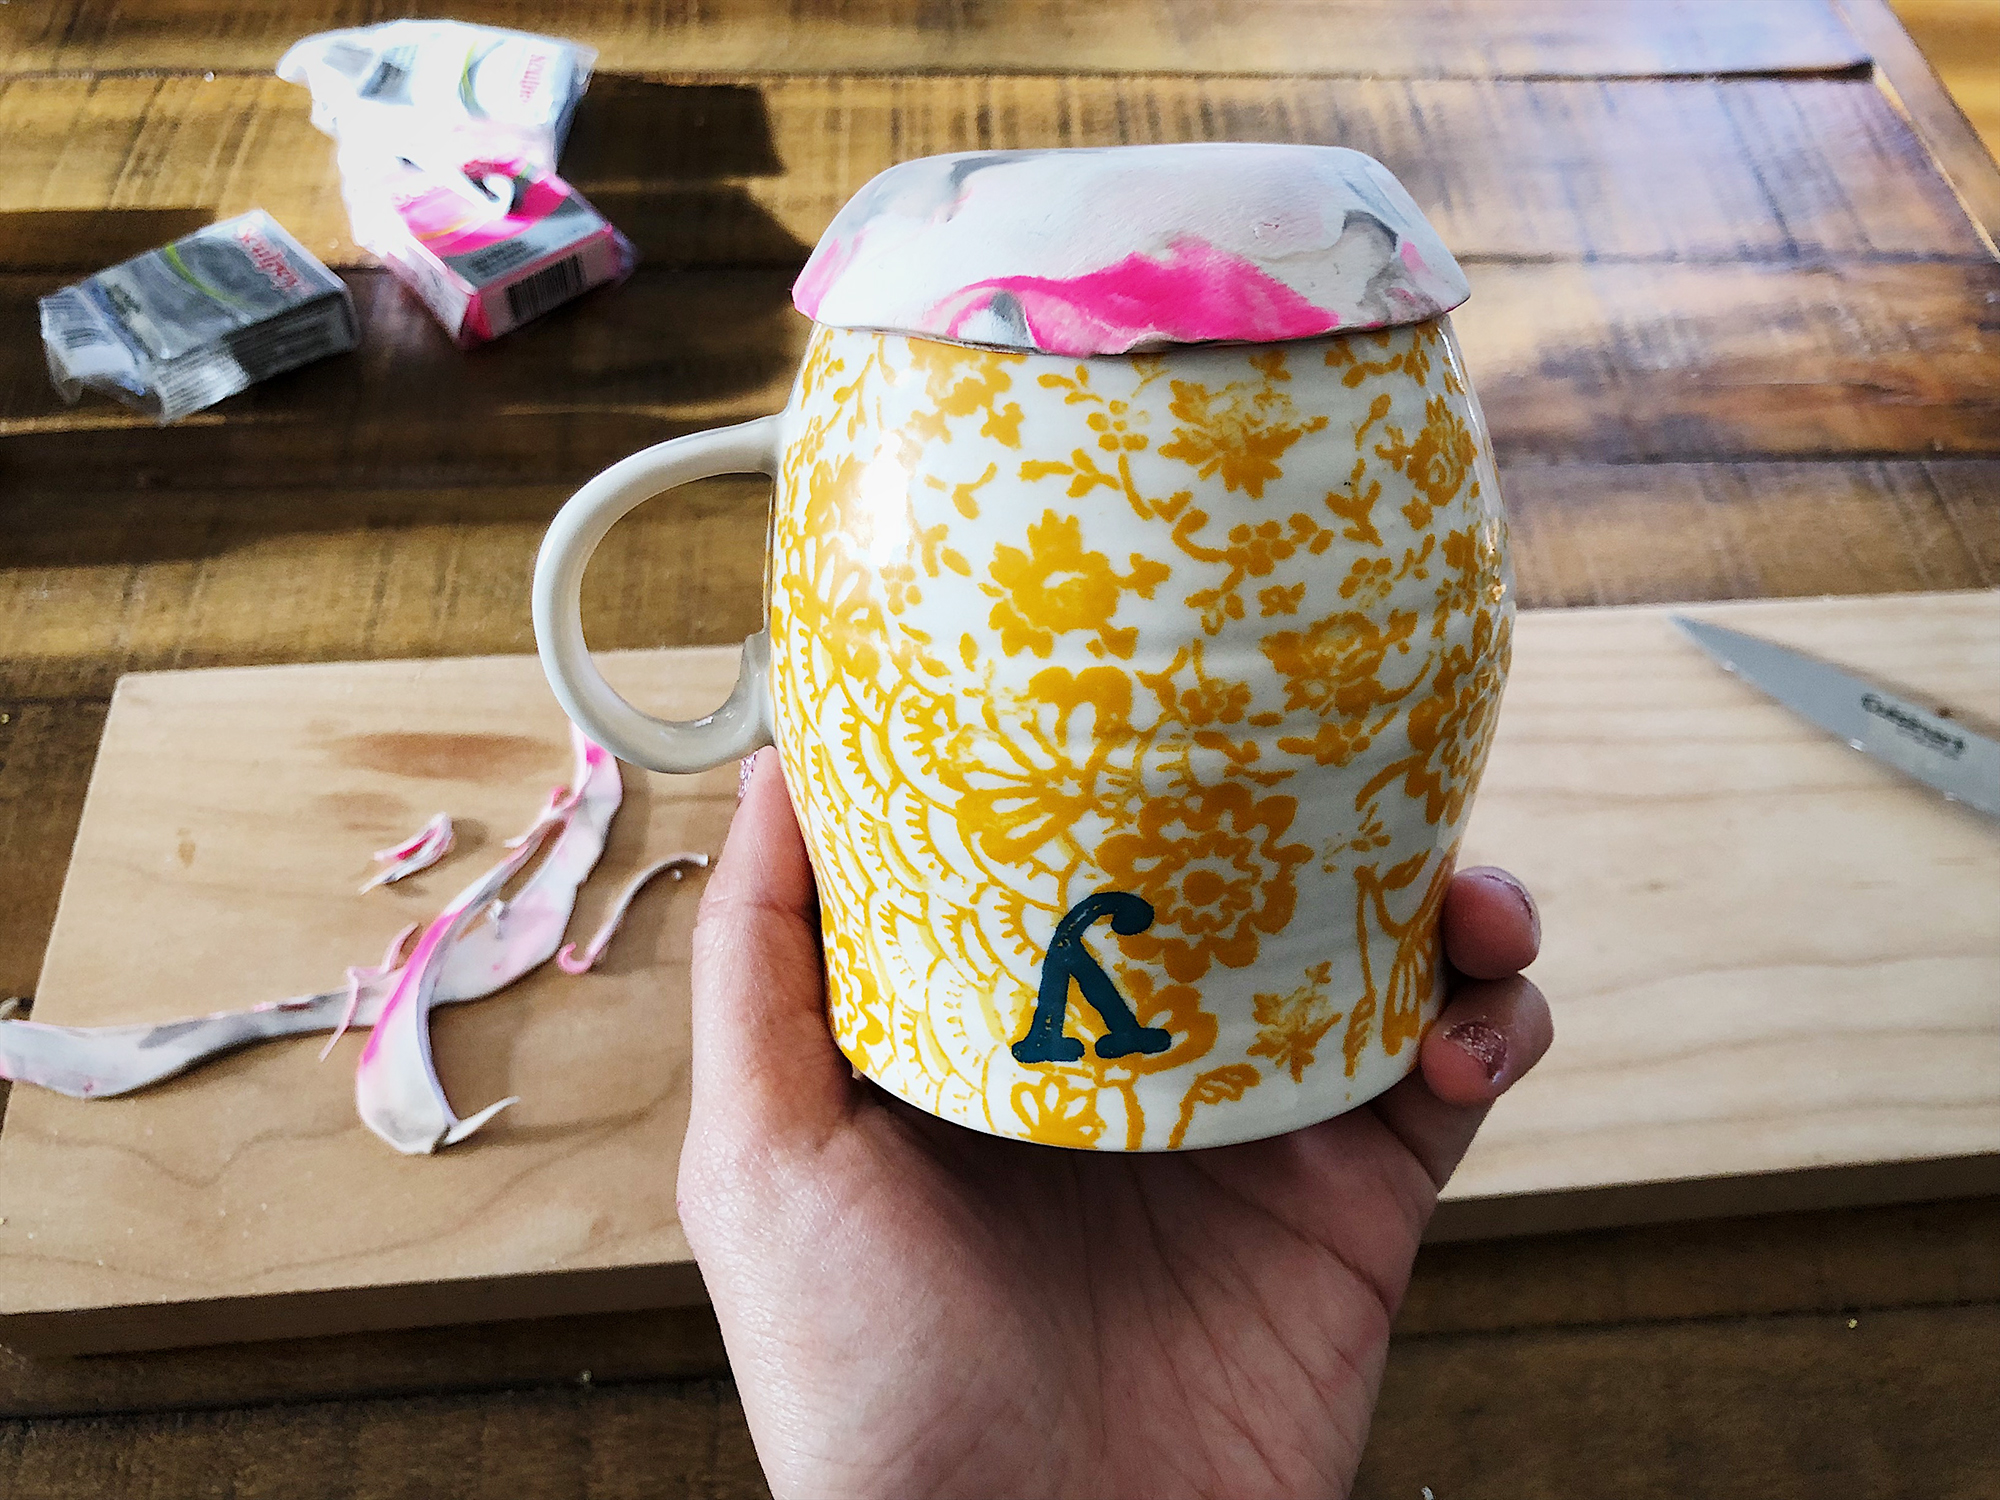 10. Find a curvy mug or a tiny bowl that is oven-safe. Turn it over and carefully place your clay on top of the base of the mug.  Heat it the oven for 15 minutes, at 275 degrees, until your clay is cured. Do not use the microwave to heat up your clay!